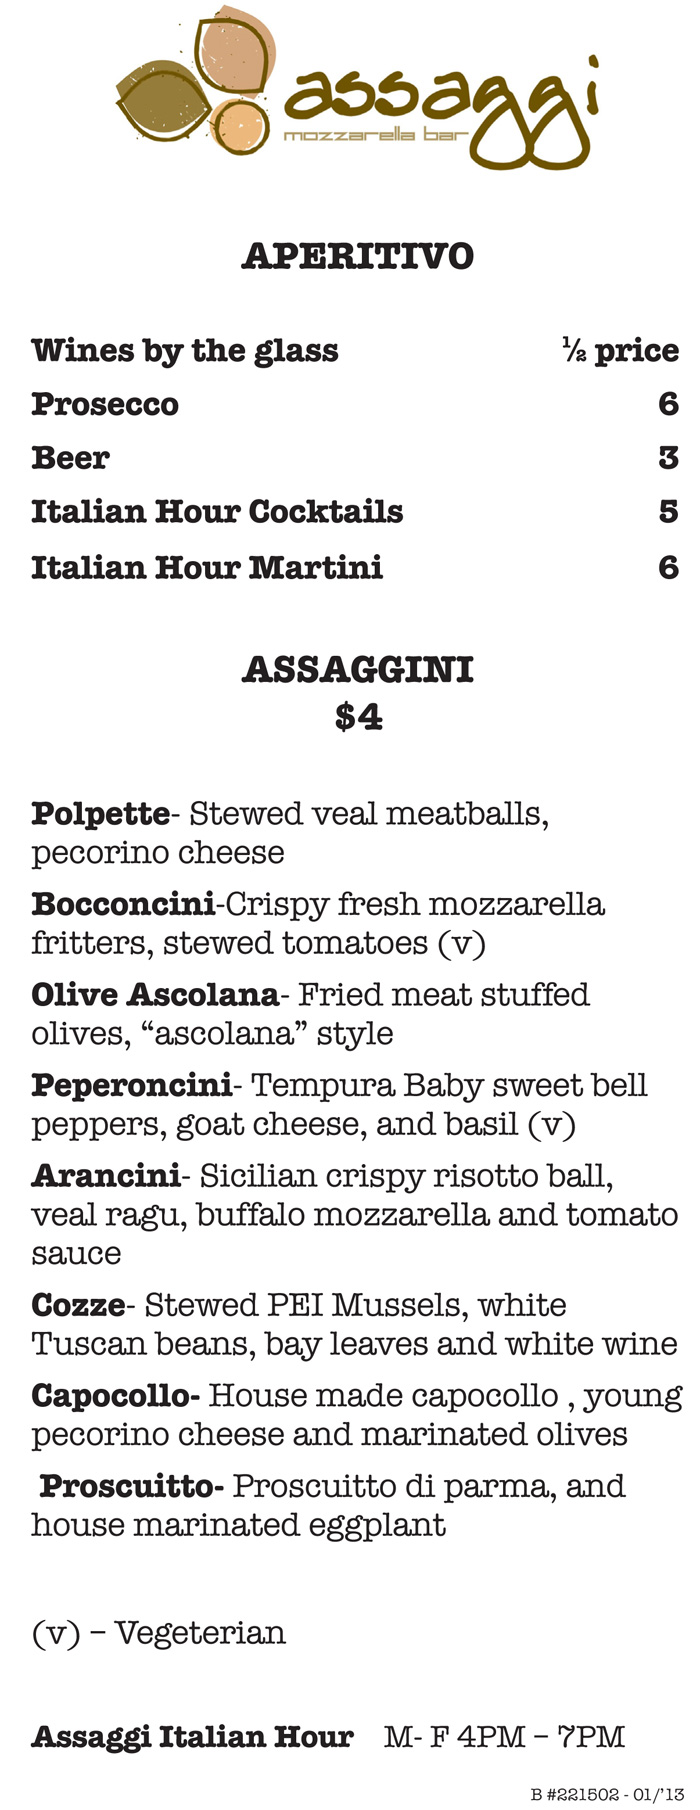 221502-Assaggi-Bar-Menu-01-'13